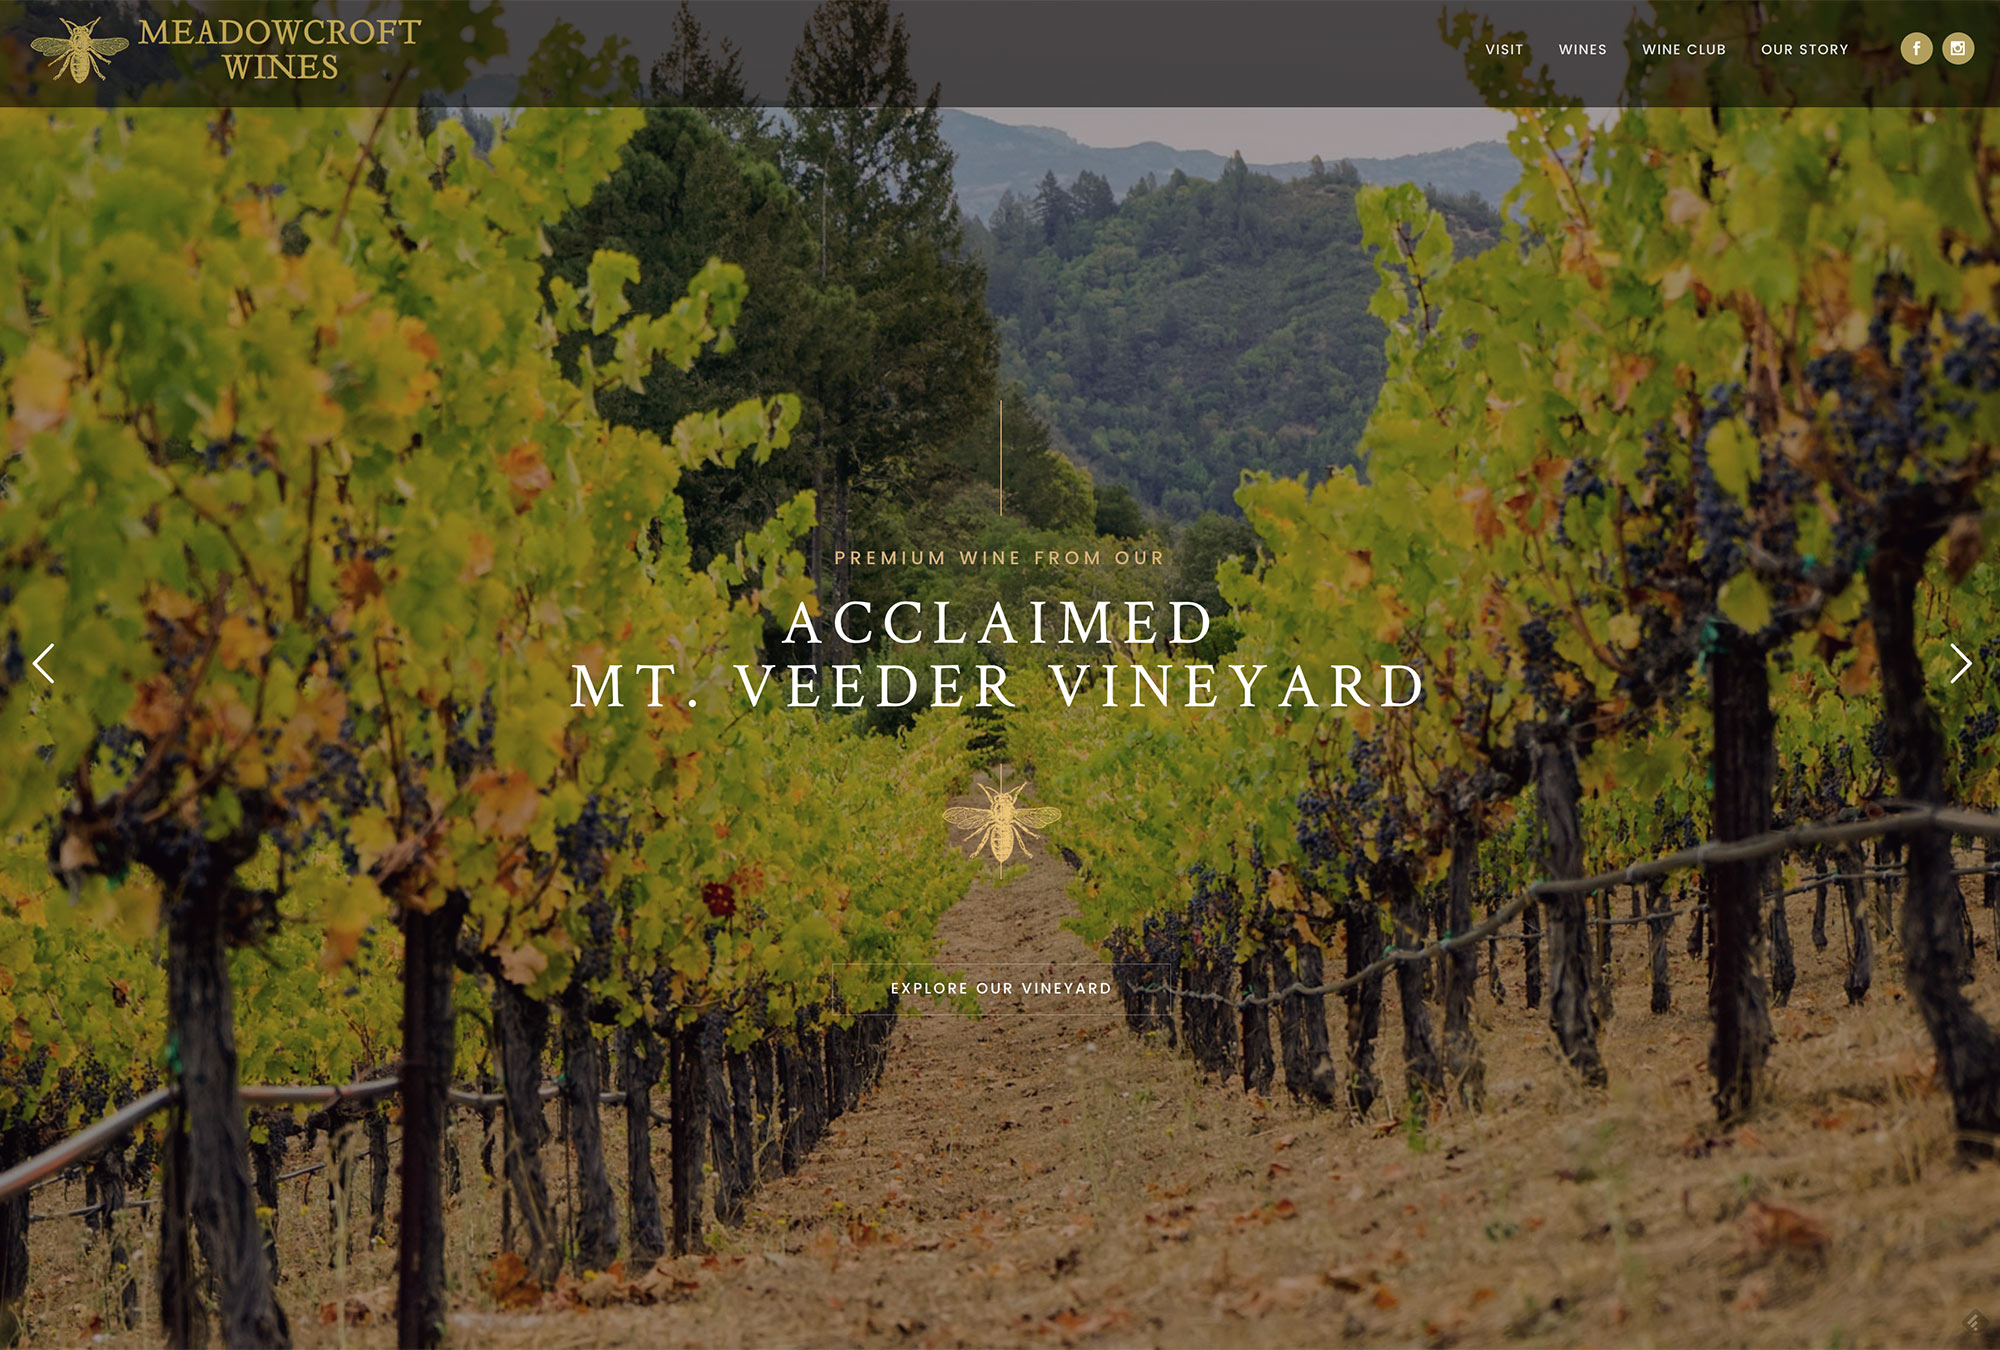 Best winery website design